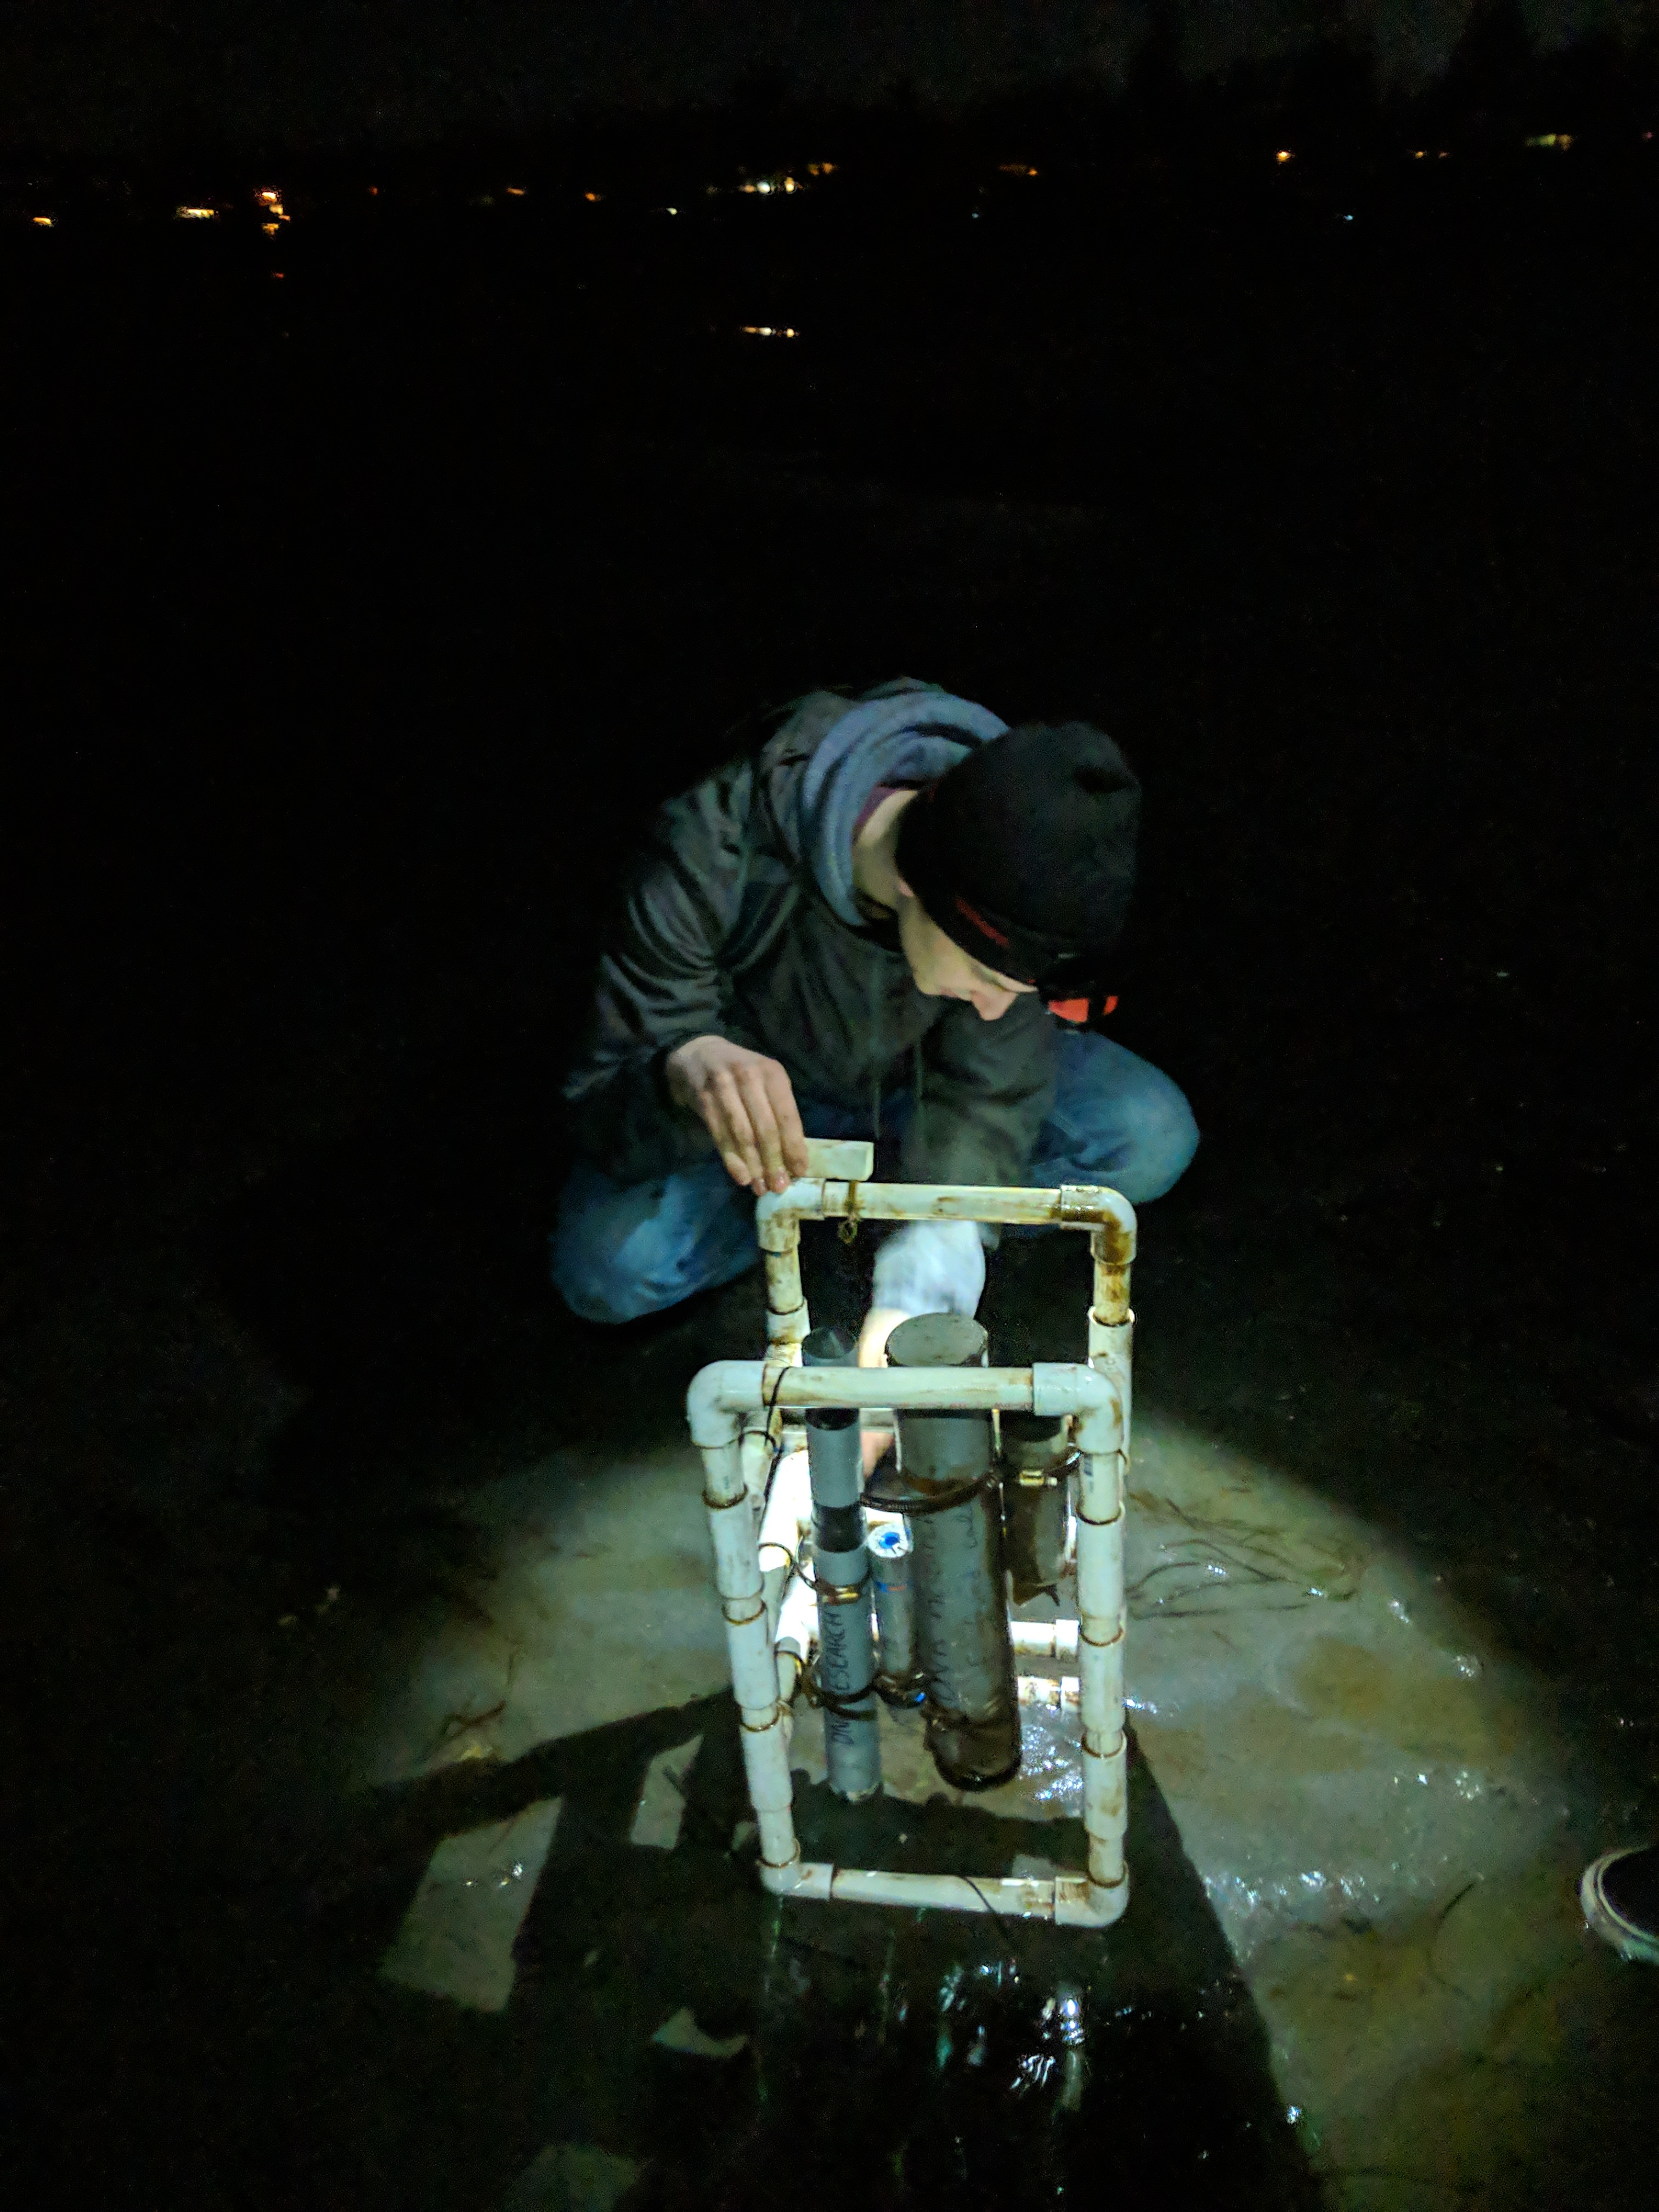 WWU student Dexter Davis cleans an ocean acidification sensor for his volunteer citizen-science work with North Sound Stewards in Bellingham .